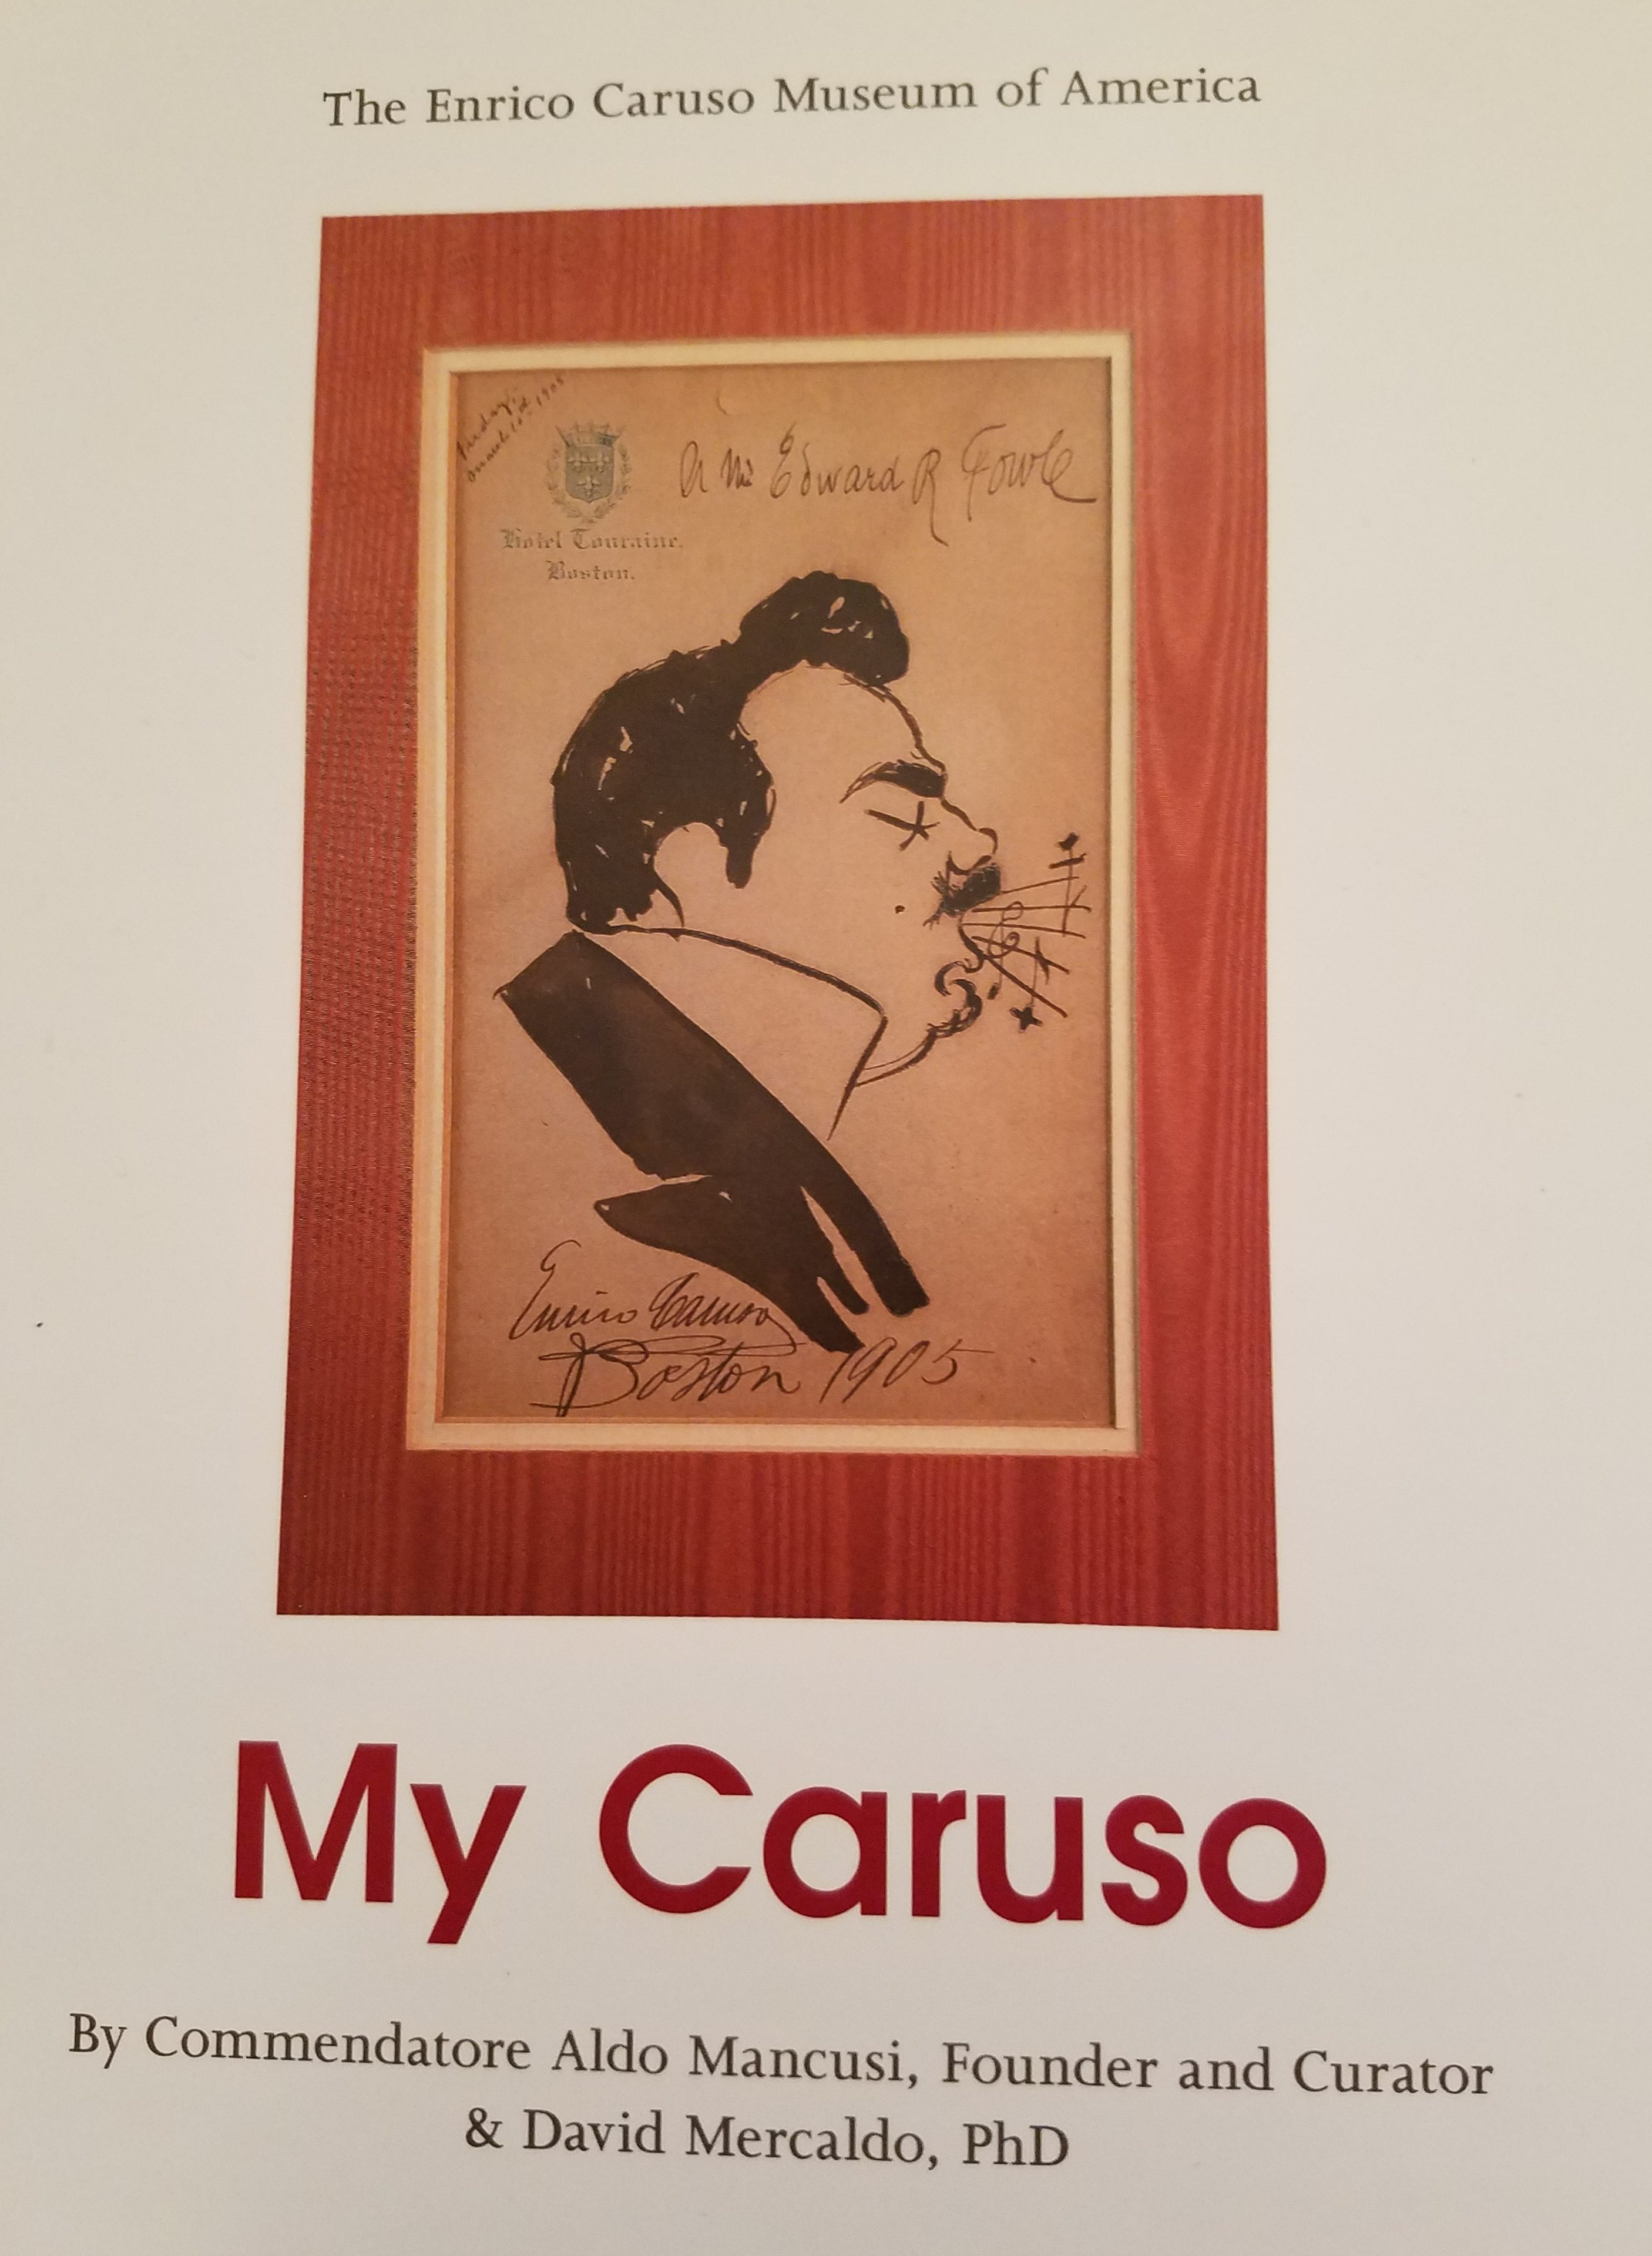 The book contains many caricatures drawn by Enrico Caruso and many personal conversations held with Michael that are first hand memories of Caruso the man.